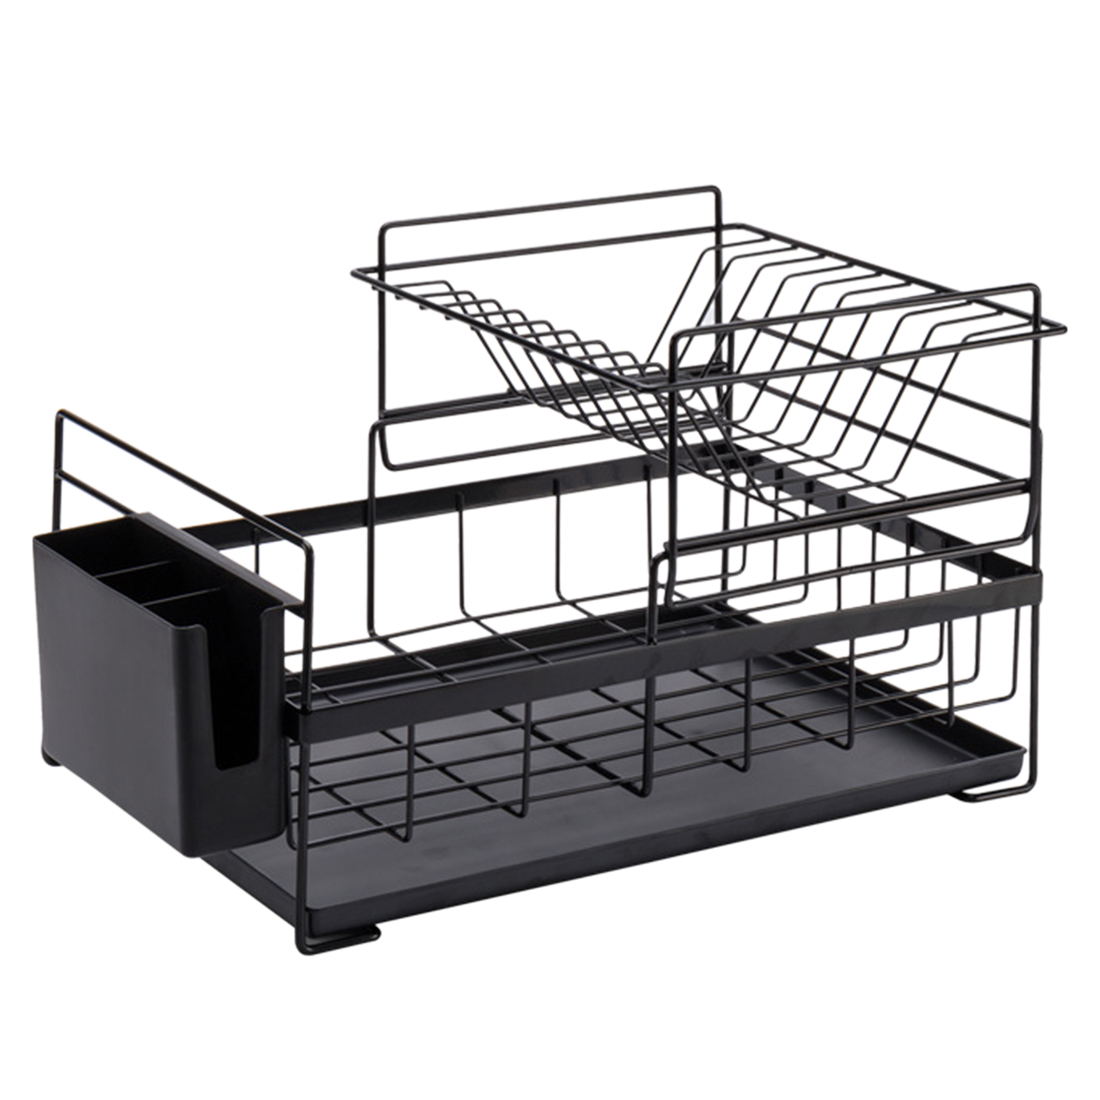 2-Tier Iron Dish Drainer Shelf Kitchen Tableware Drying Rack Home Washing Sink Dish Drainer Drying Rack Organizer - Black White